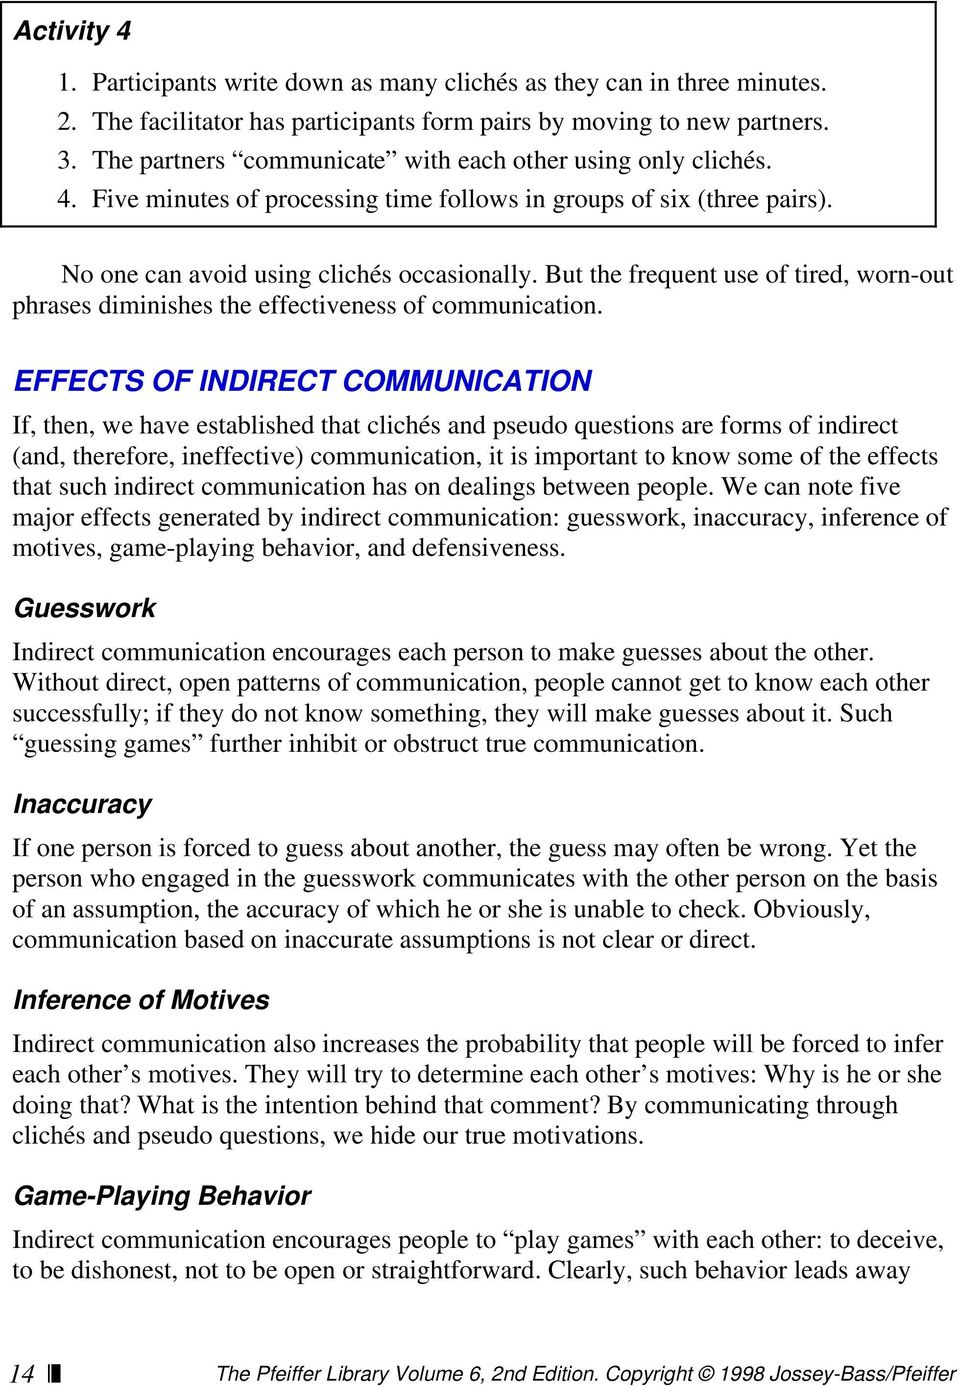 CONDITIONS THAT HINDER EFFECTIVE COMMUNICATION - PDF